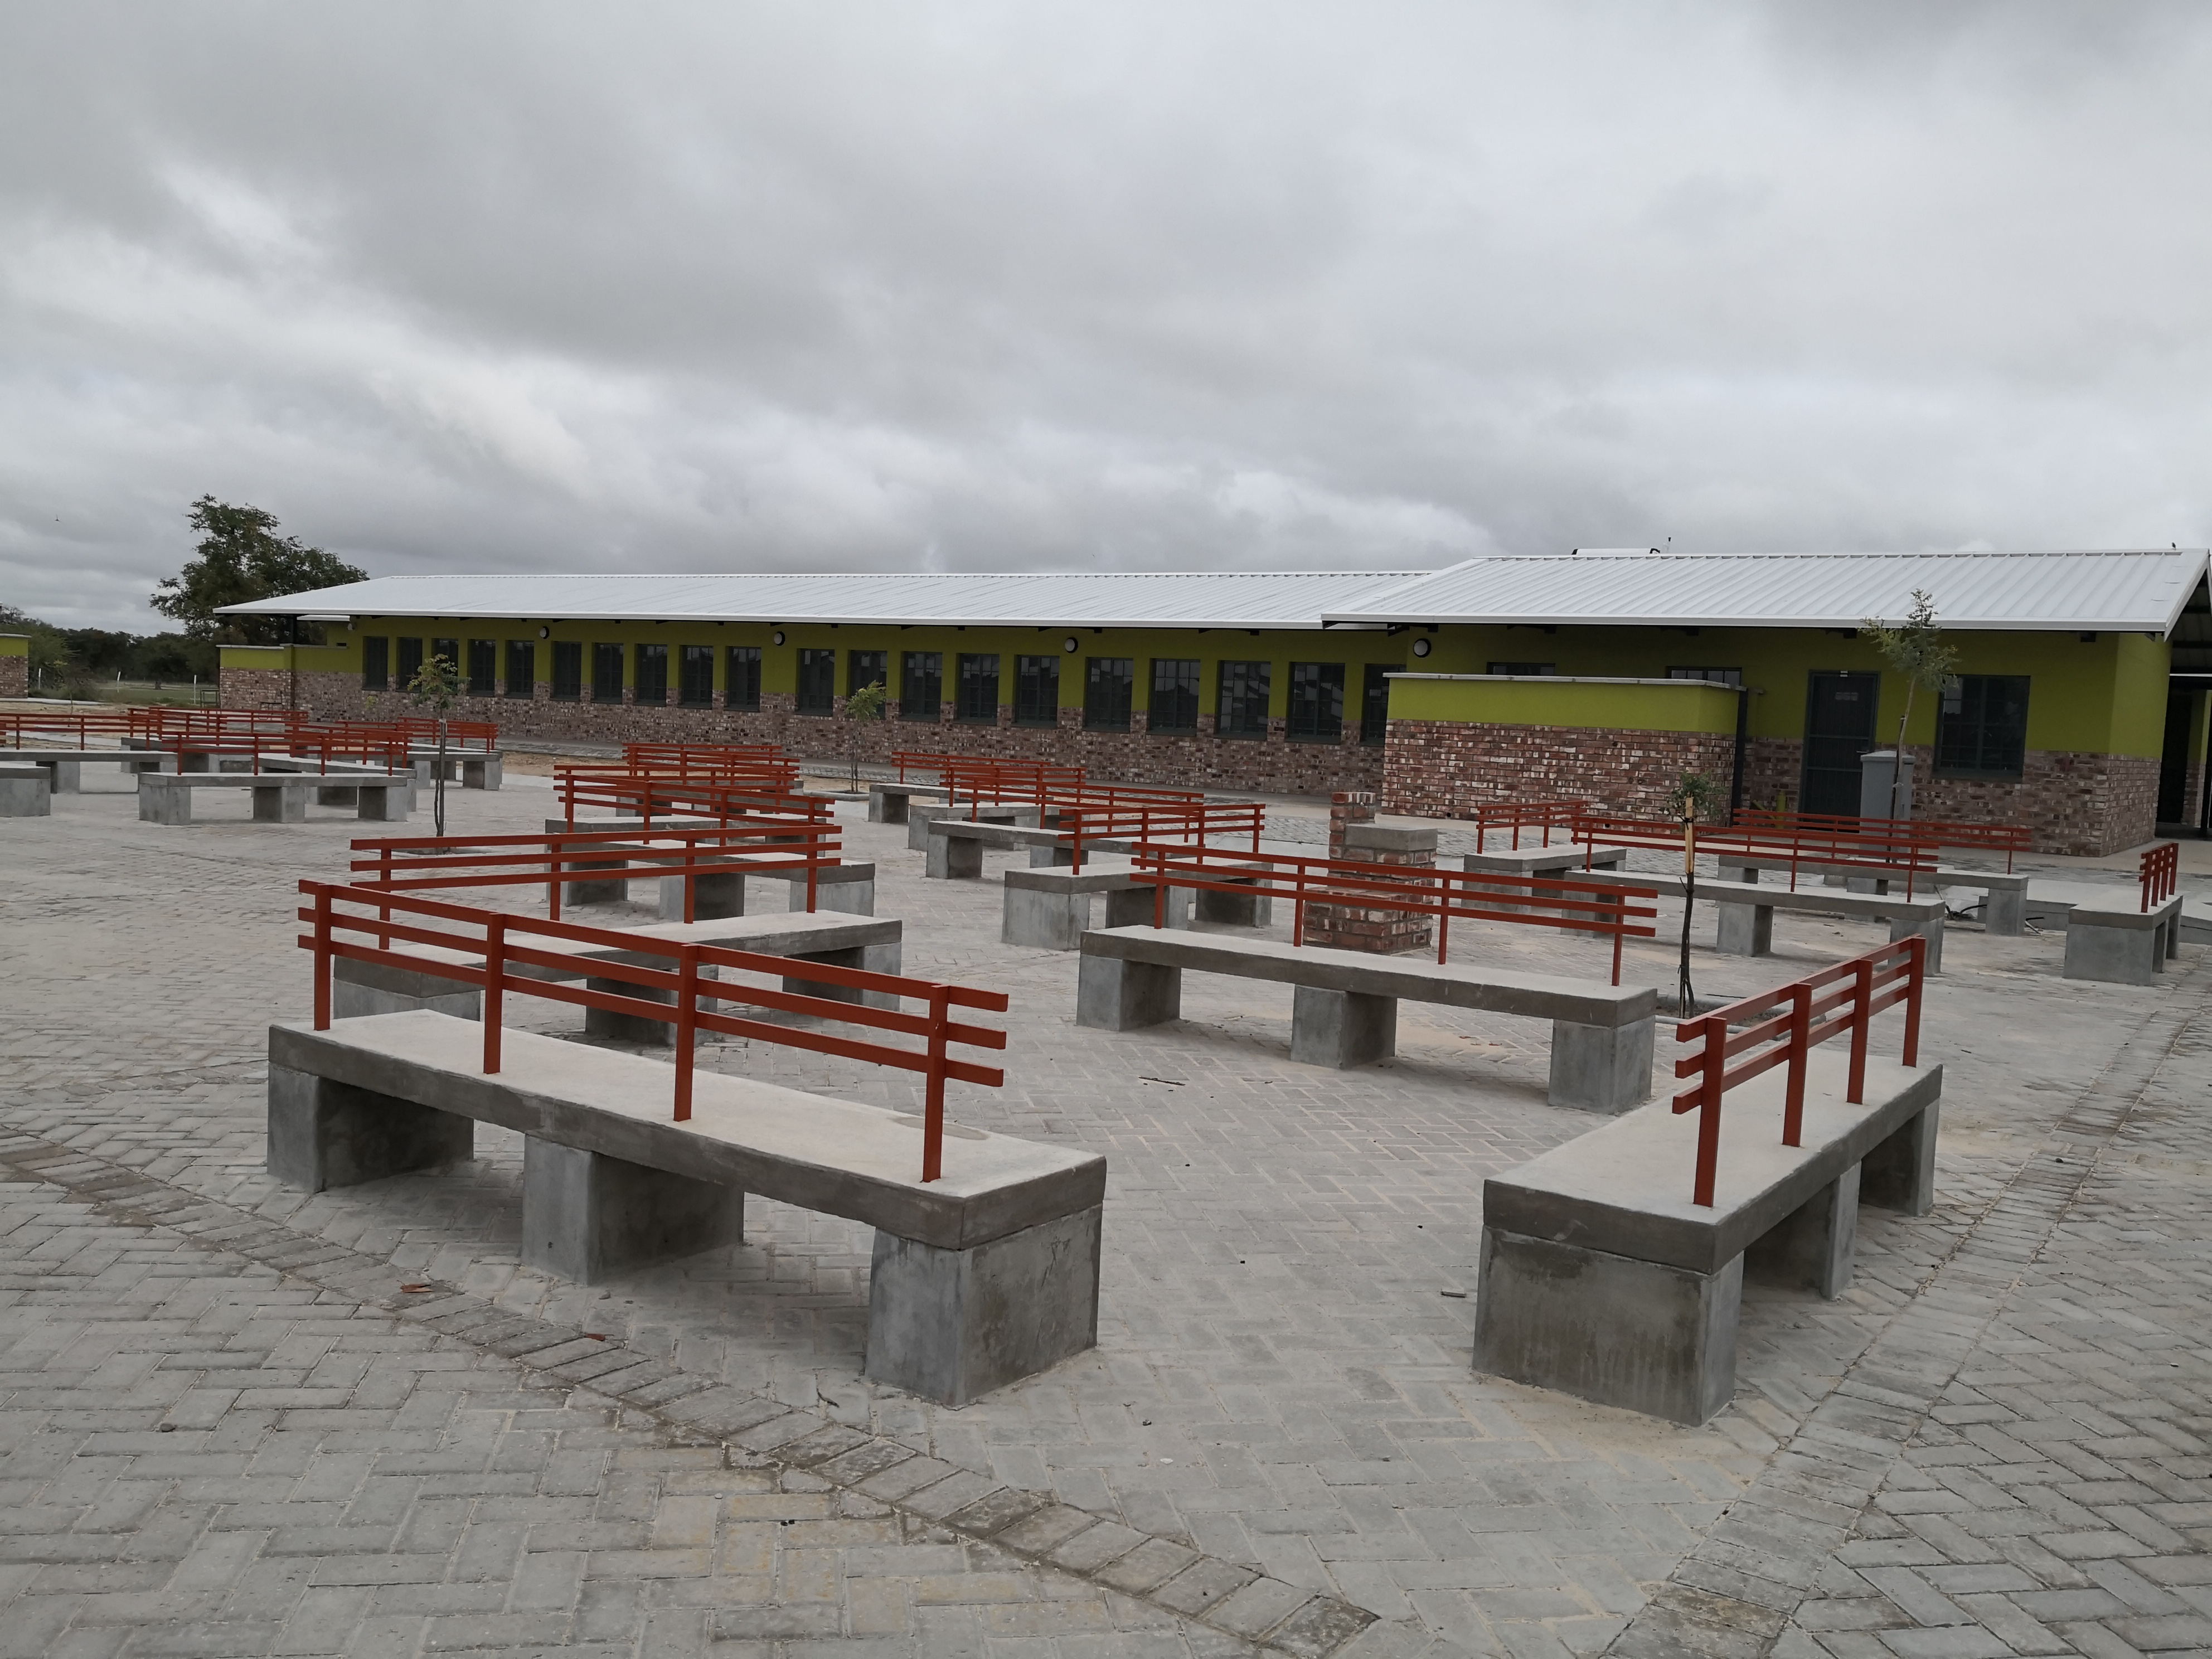 Hostel handover sees another delay